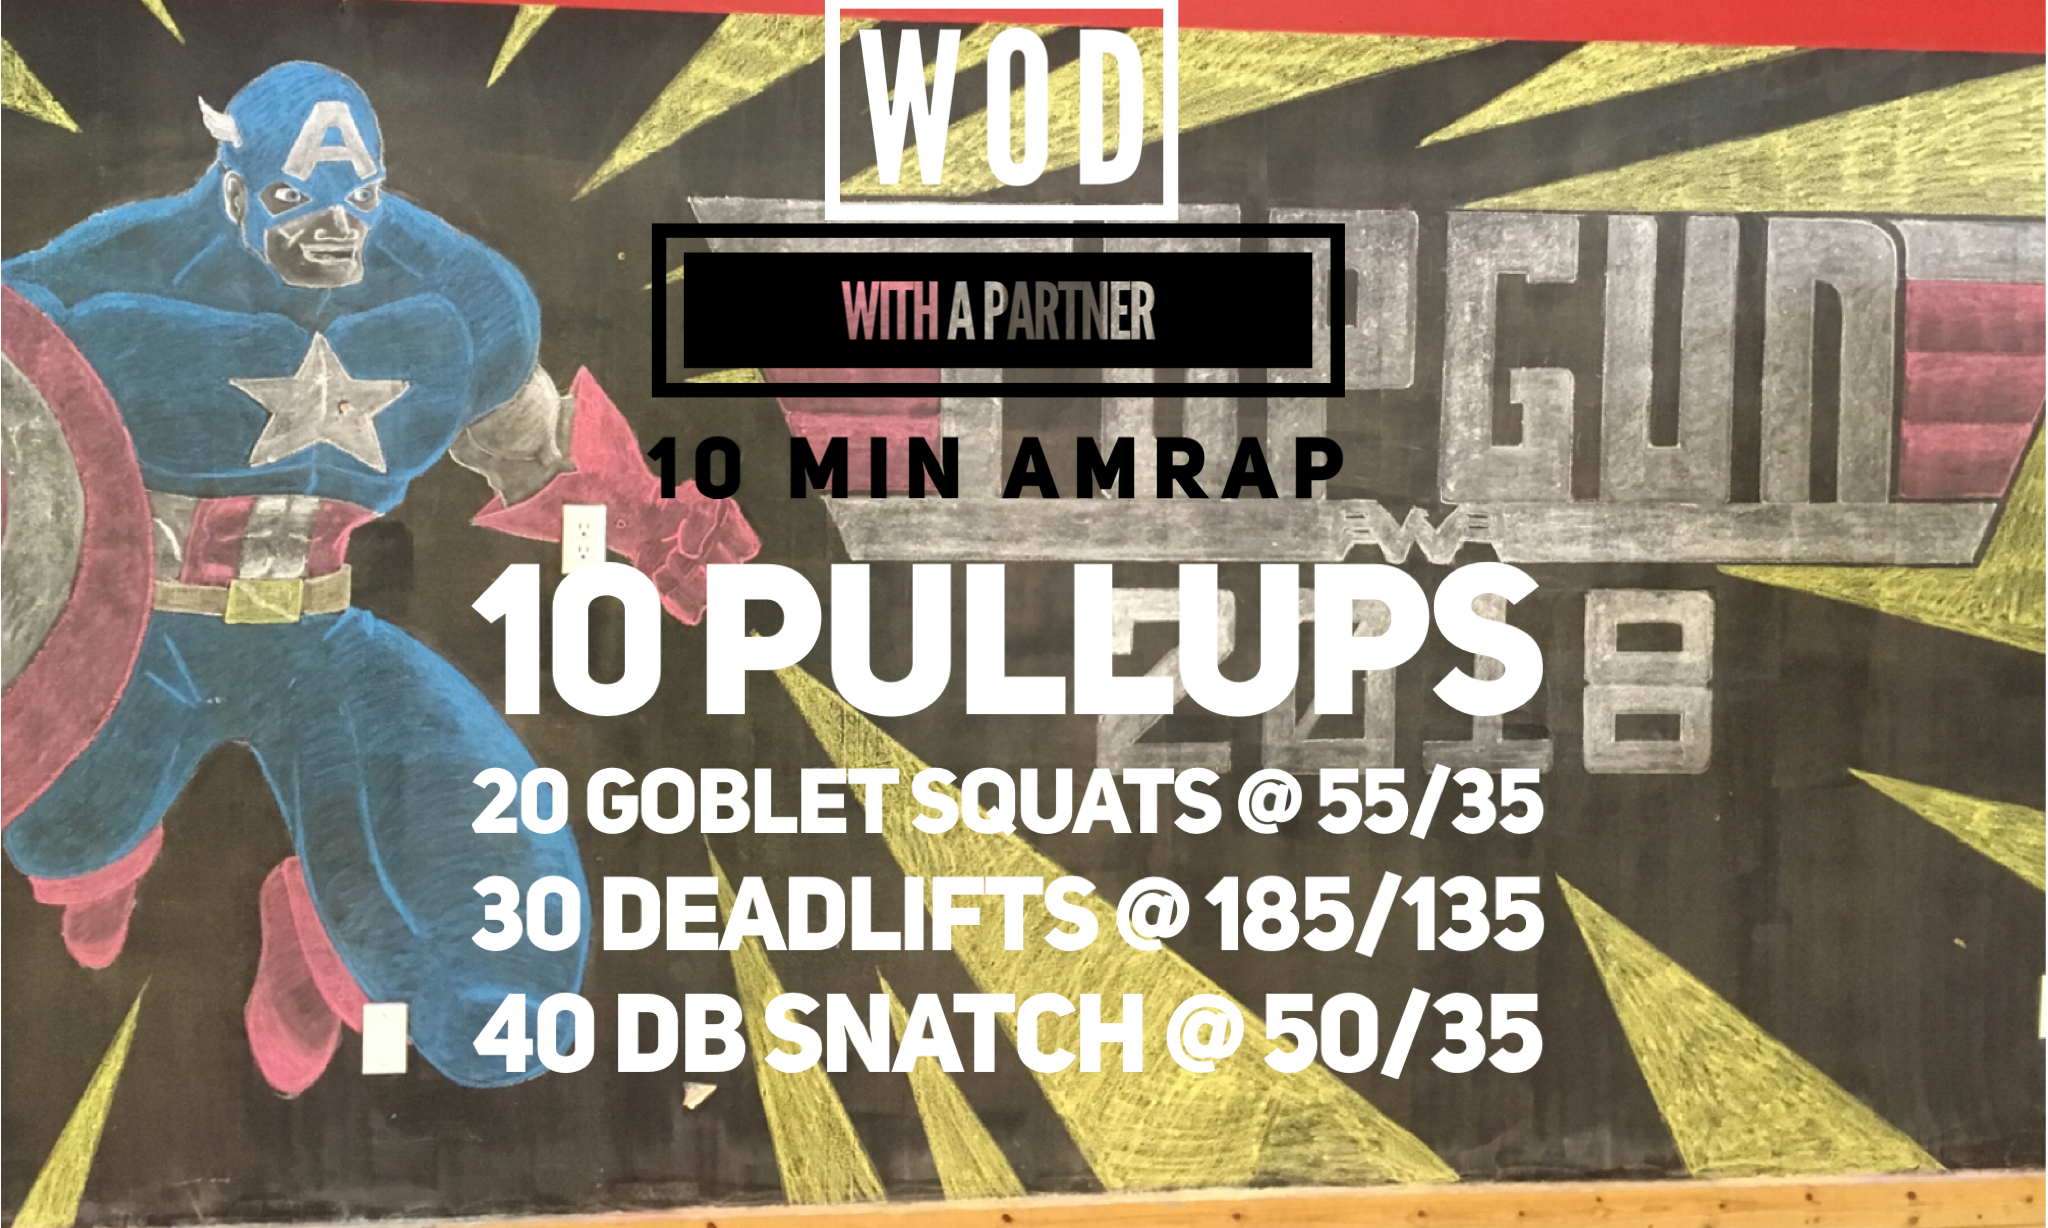 Level 3:: Bar Muscle Ups, Double KB front squats, deads @ 225/155